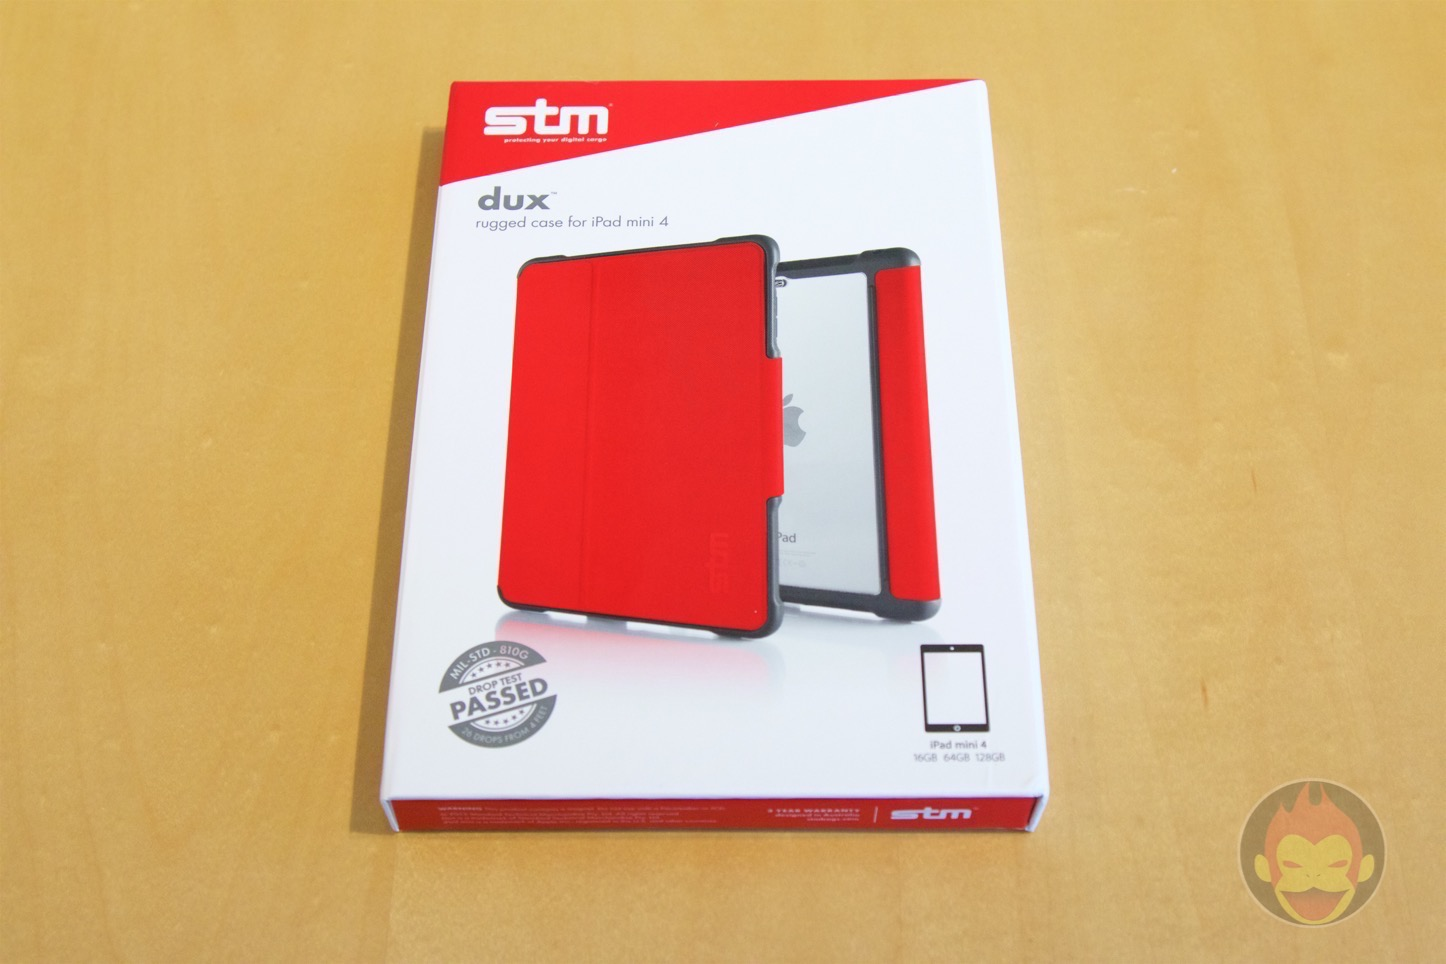 STM-Dux-Case-for-iPad-mini-4-04.jpg